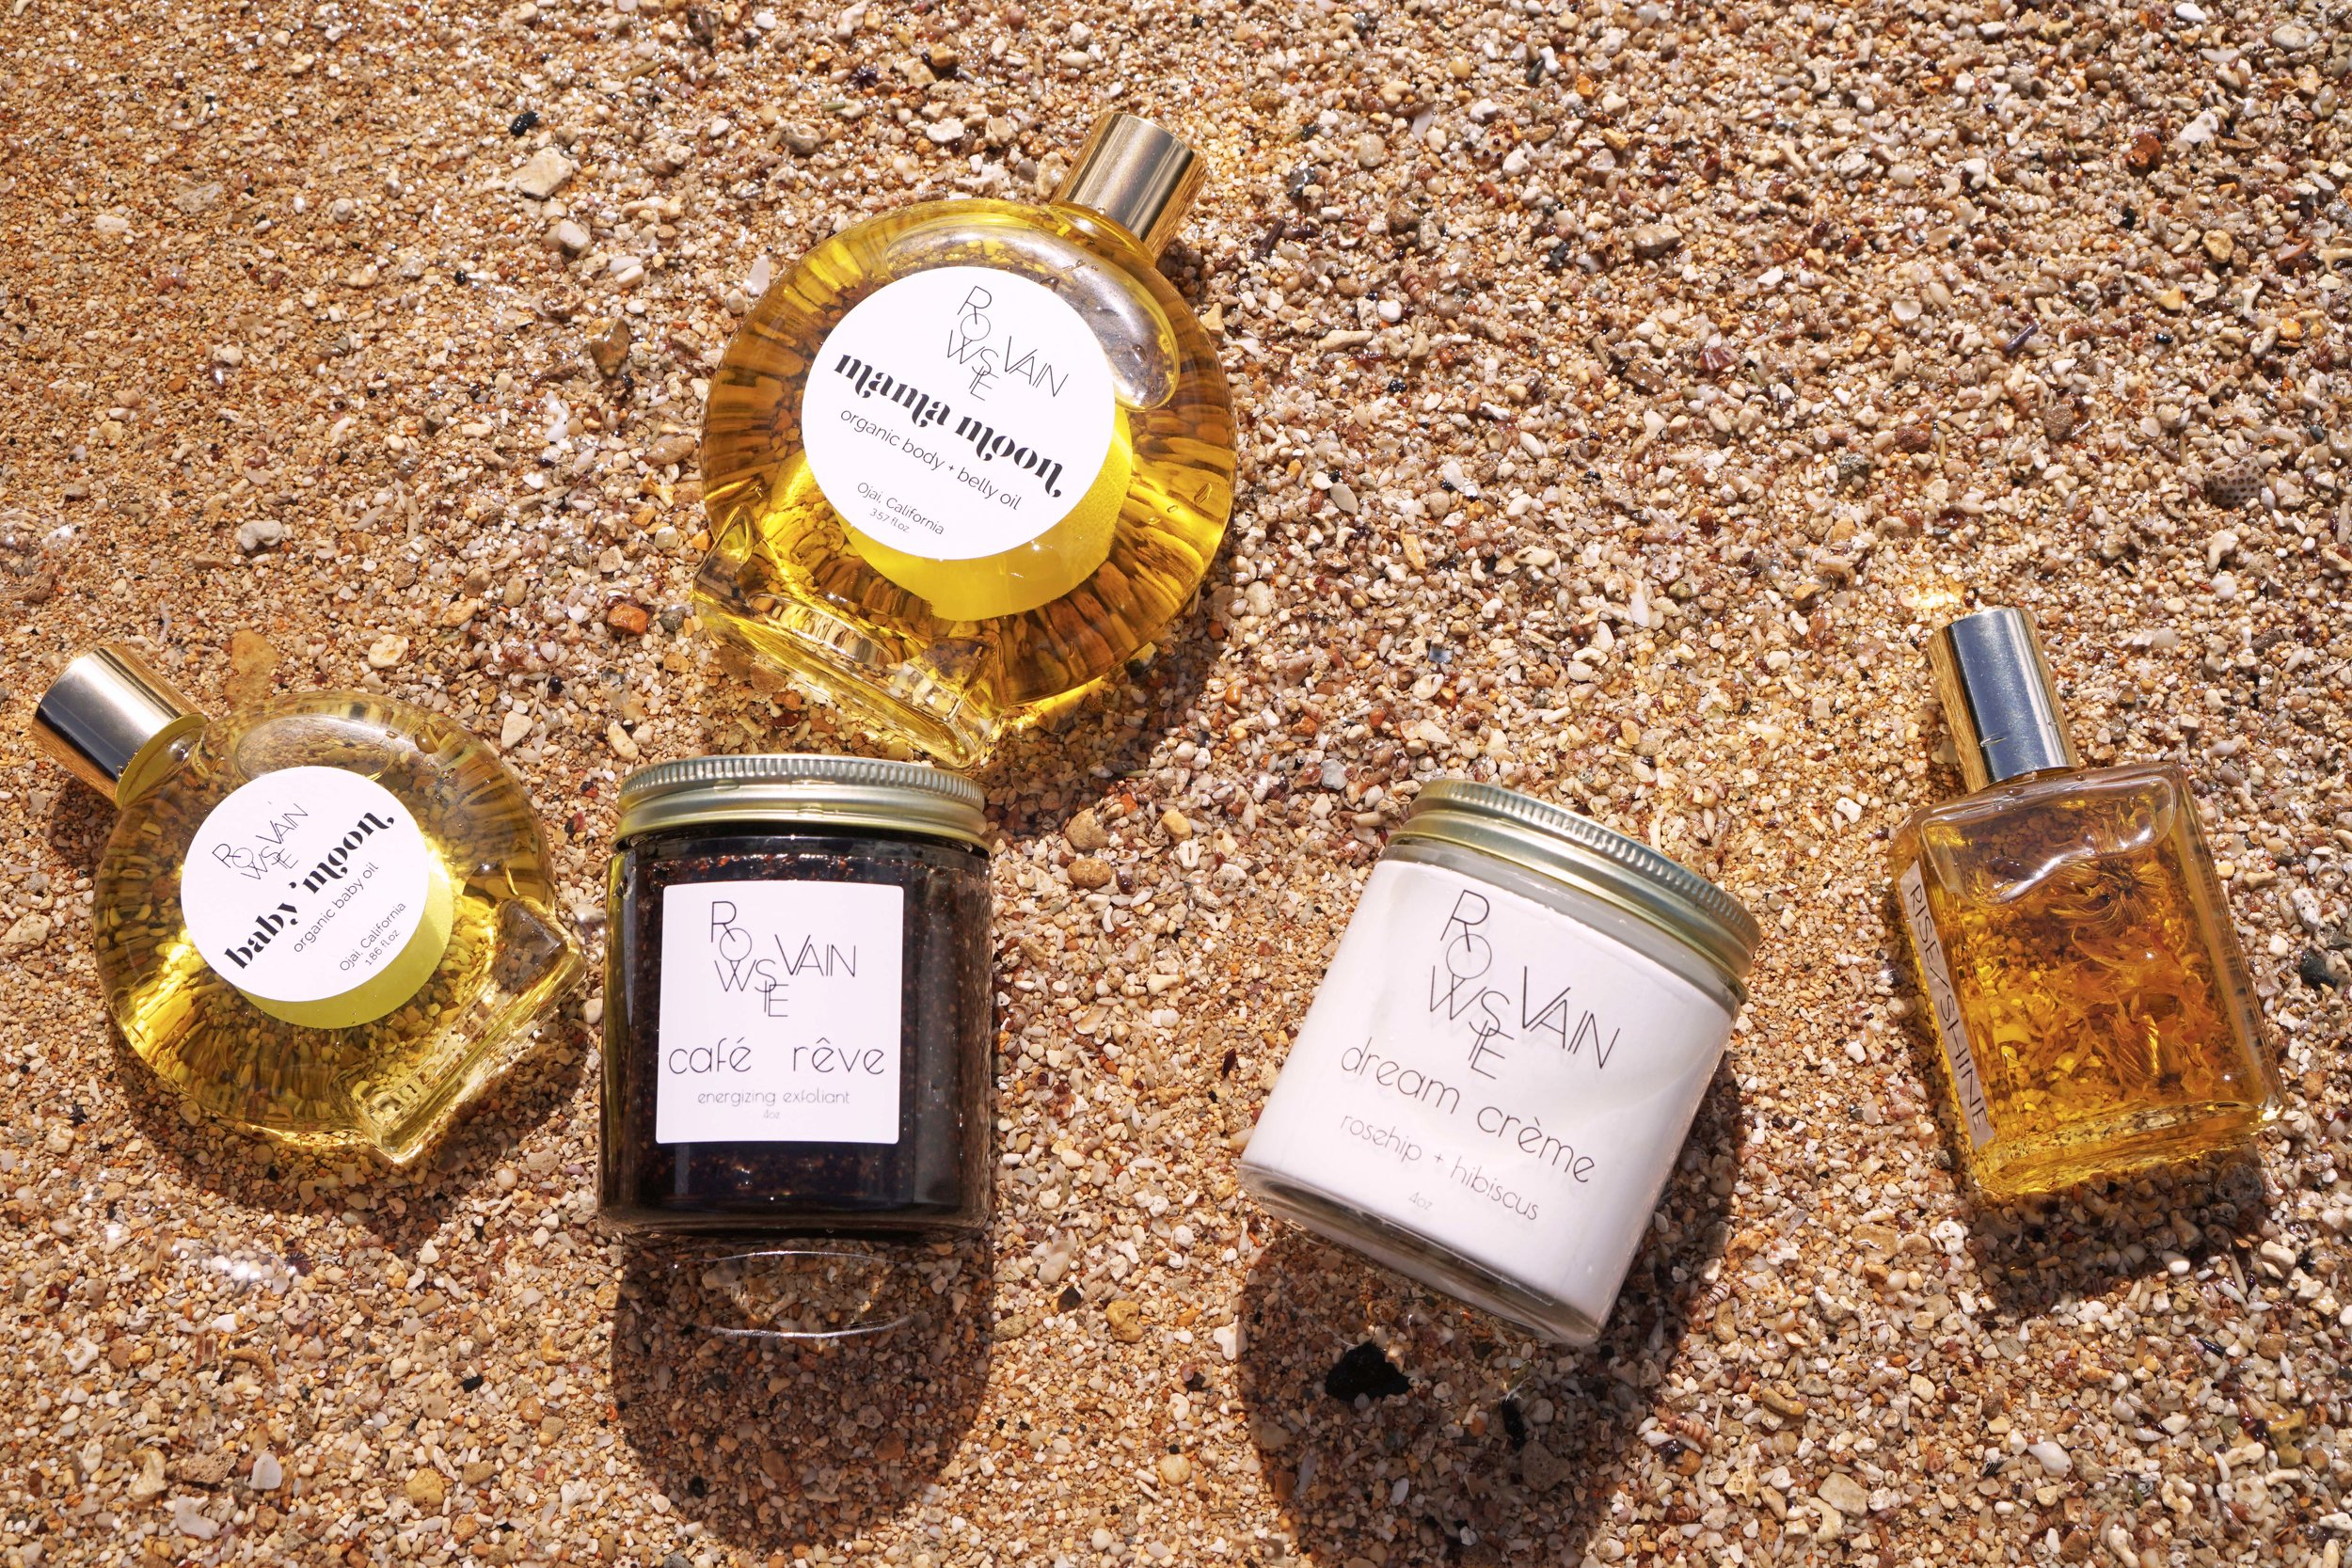 Rowsie Vain  natural skincare products